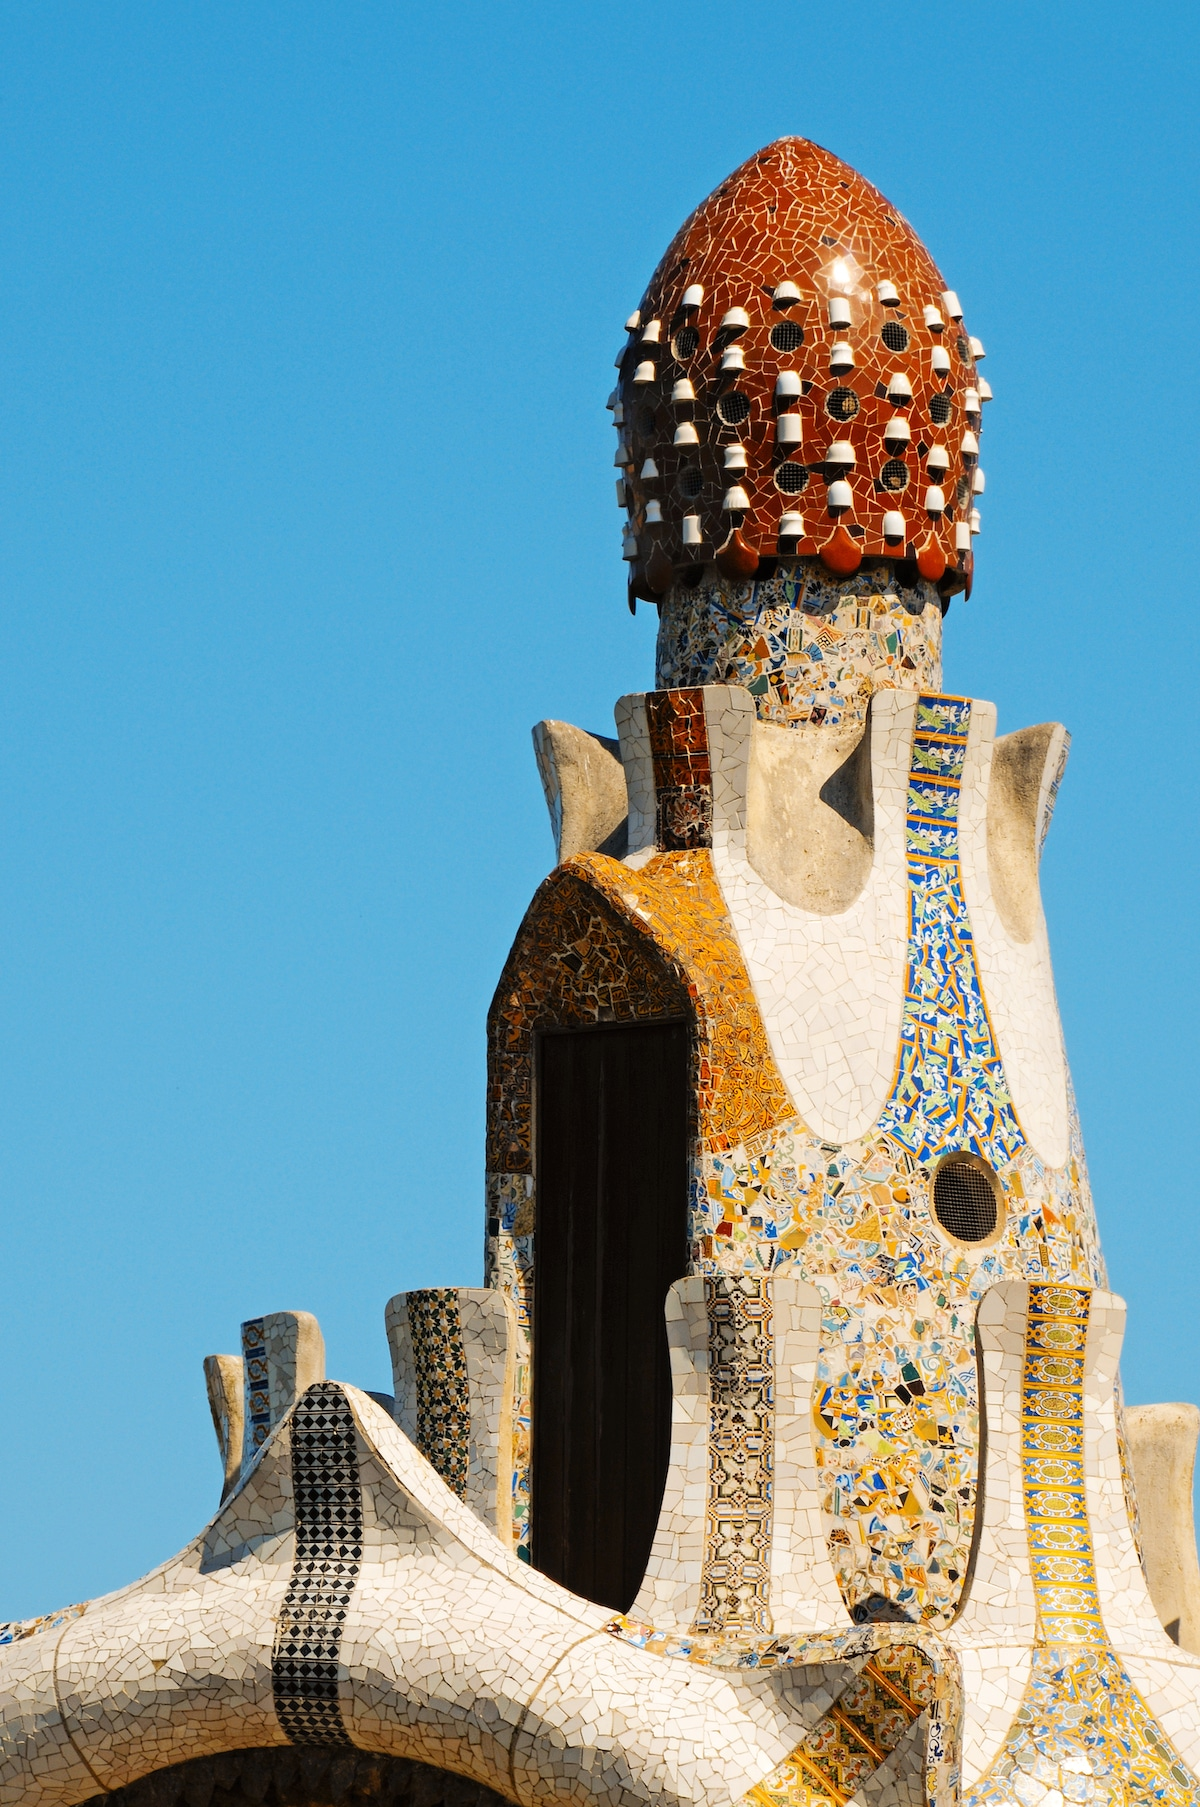 Roof Details on Gaudi's Work